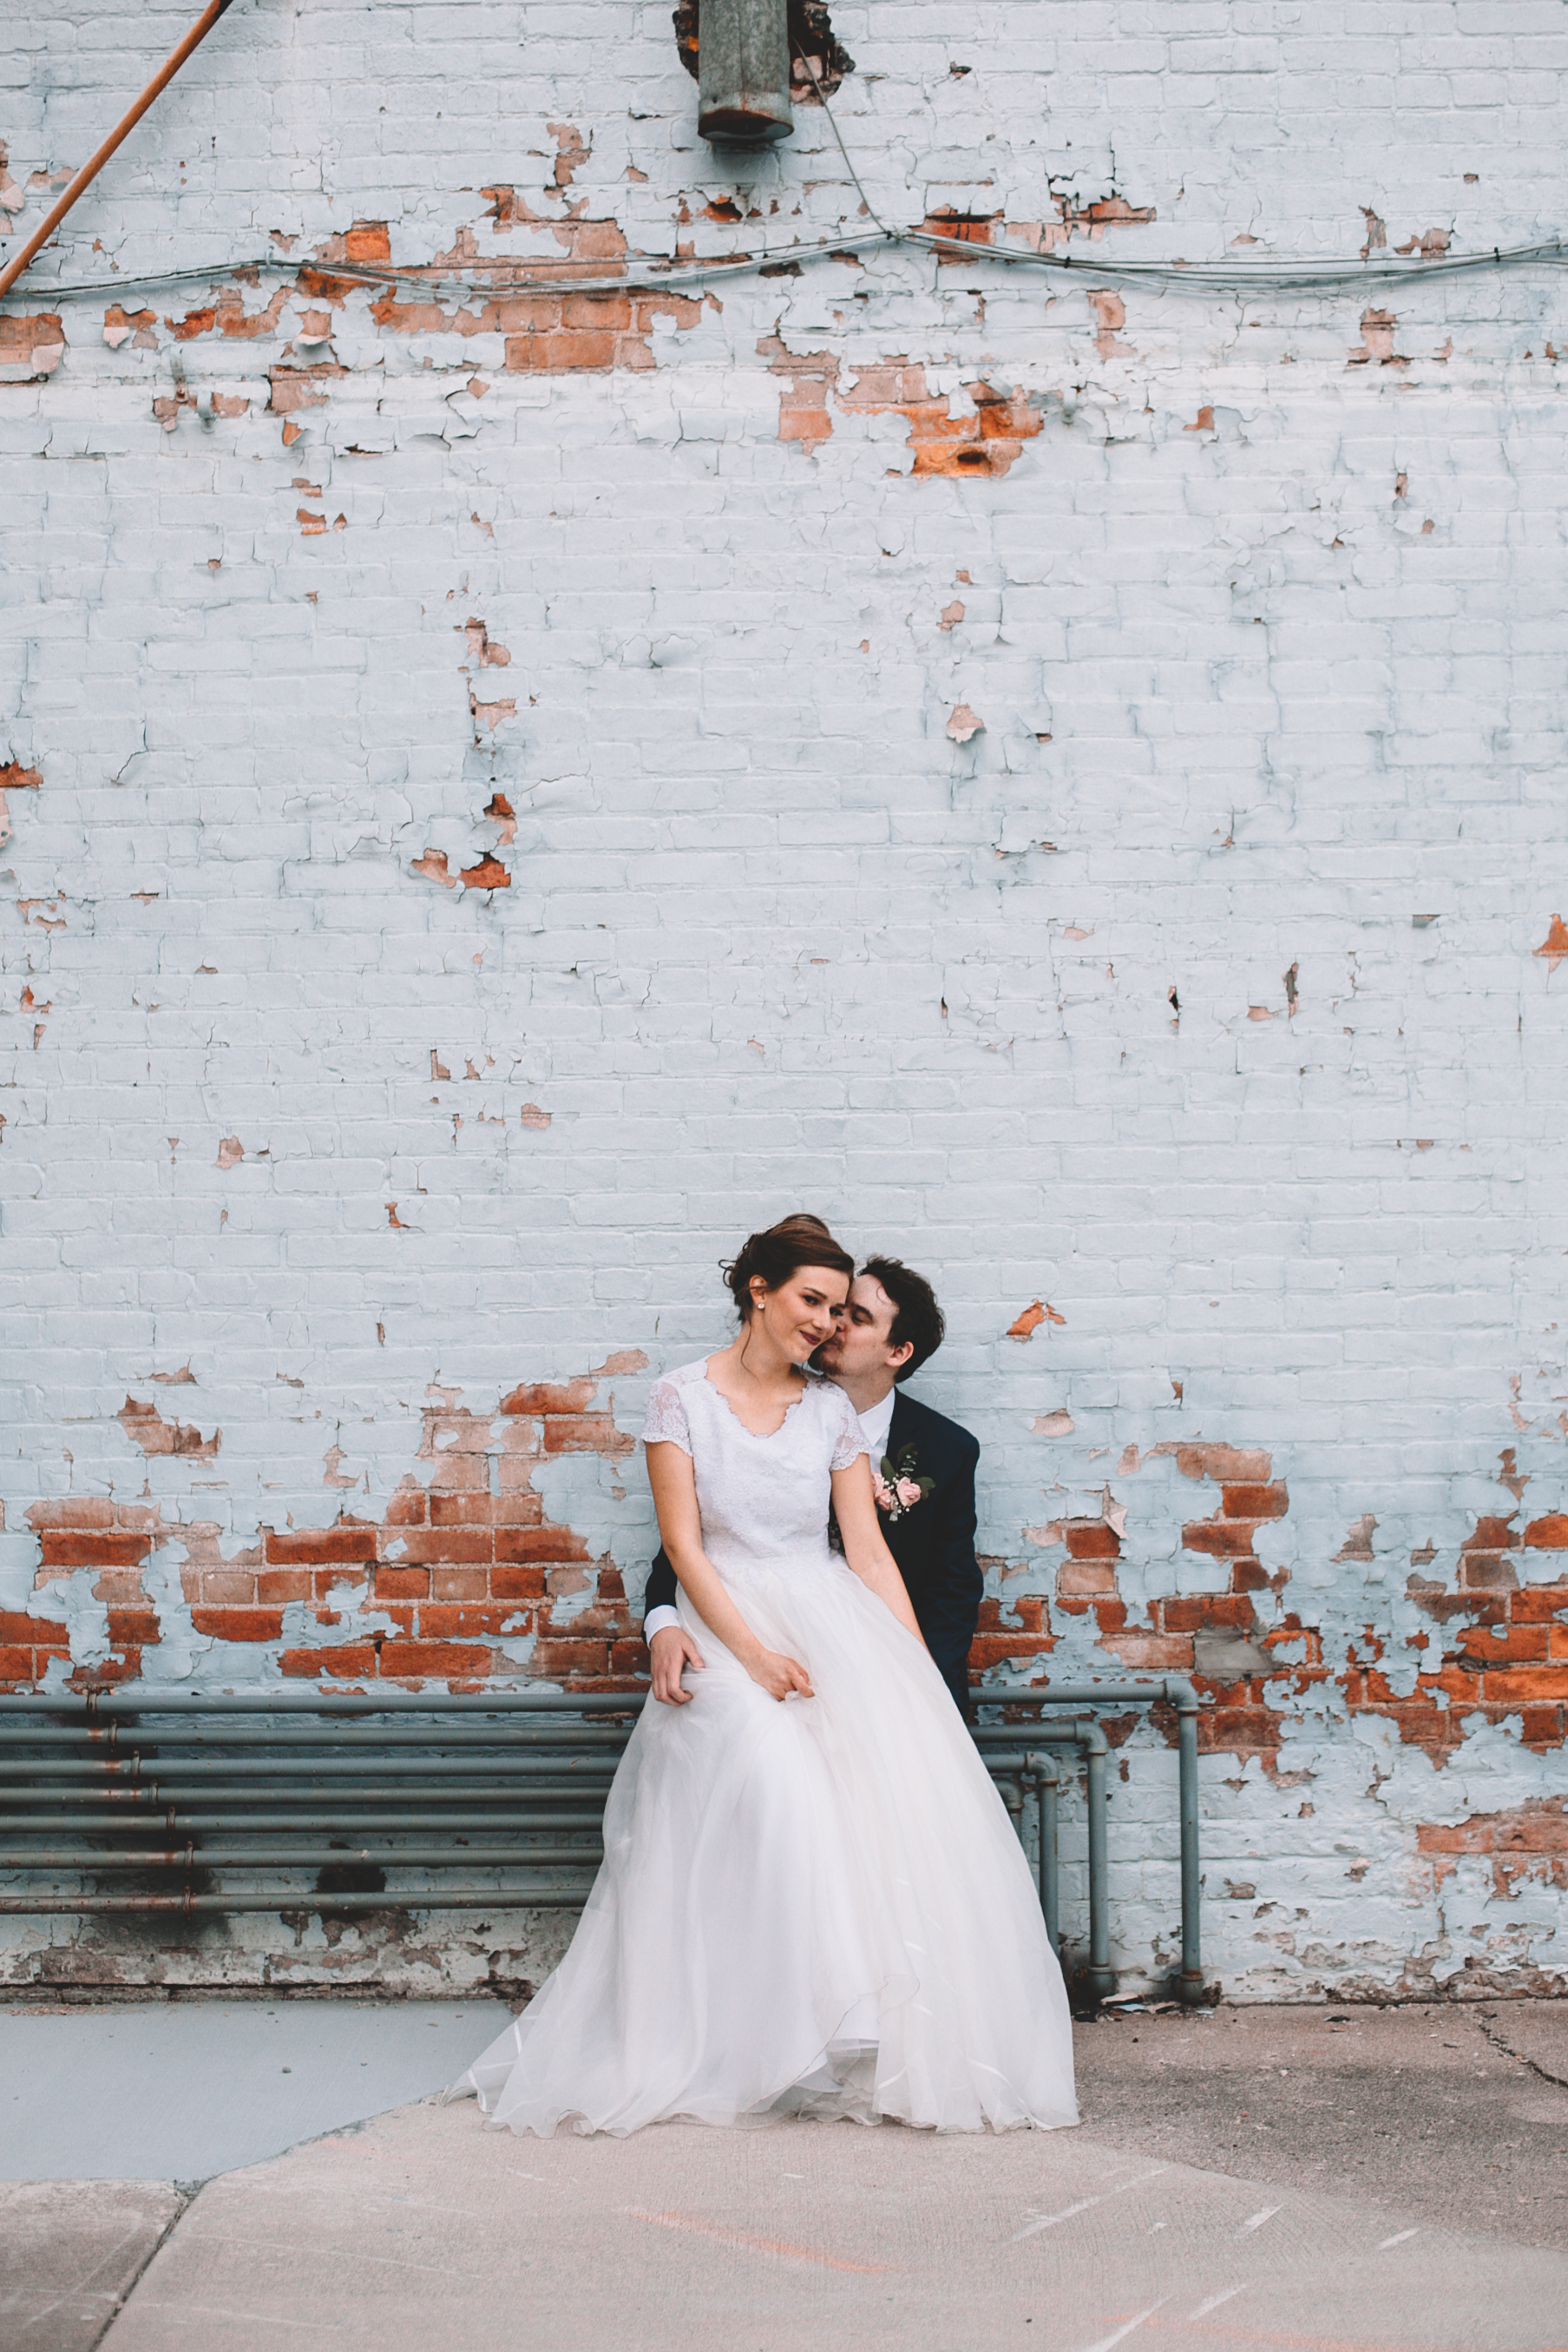 Urban Distressed Brick Wall Bridal Portraits Again We Say Rejoice Photography (2 of 18).jpg